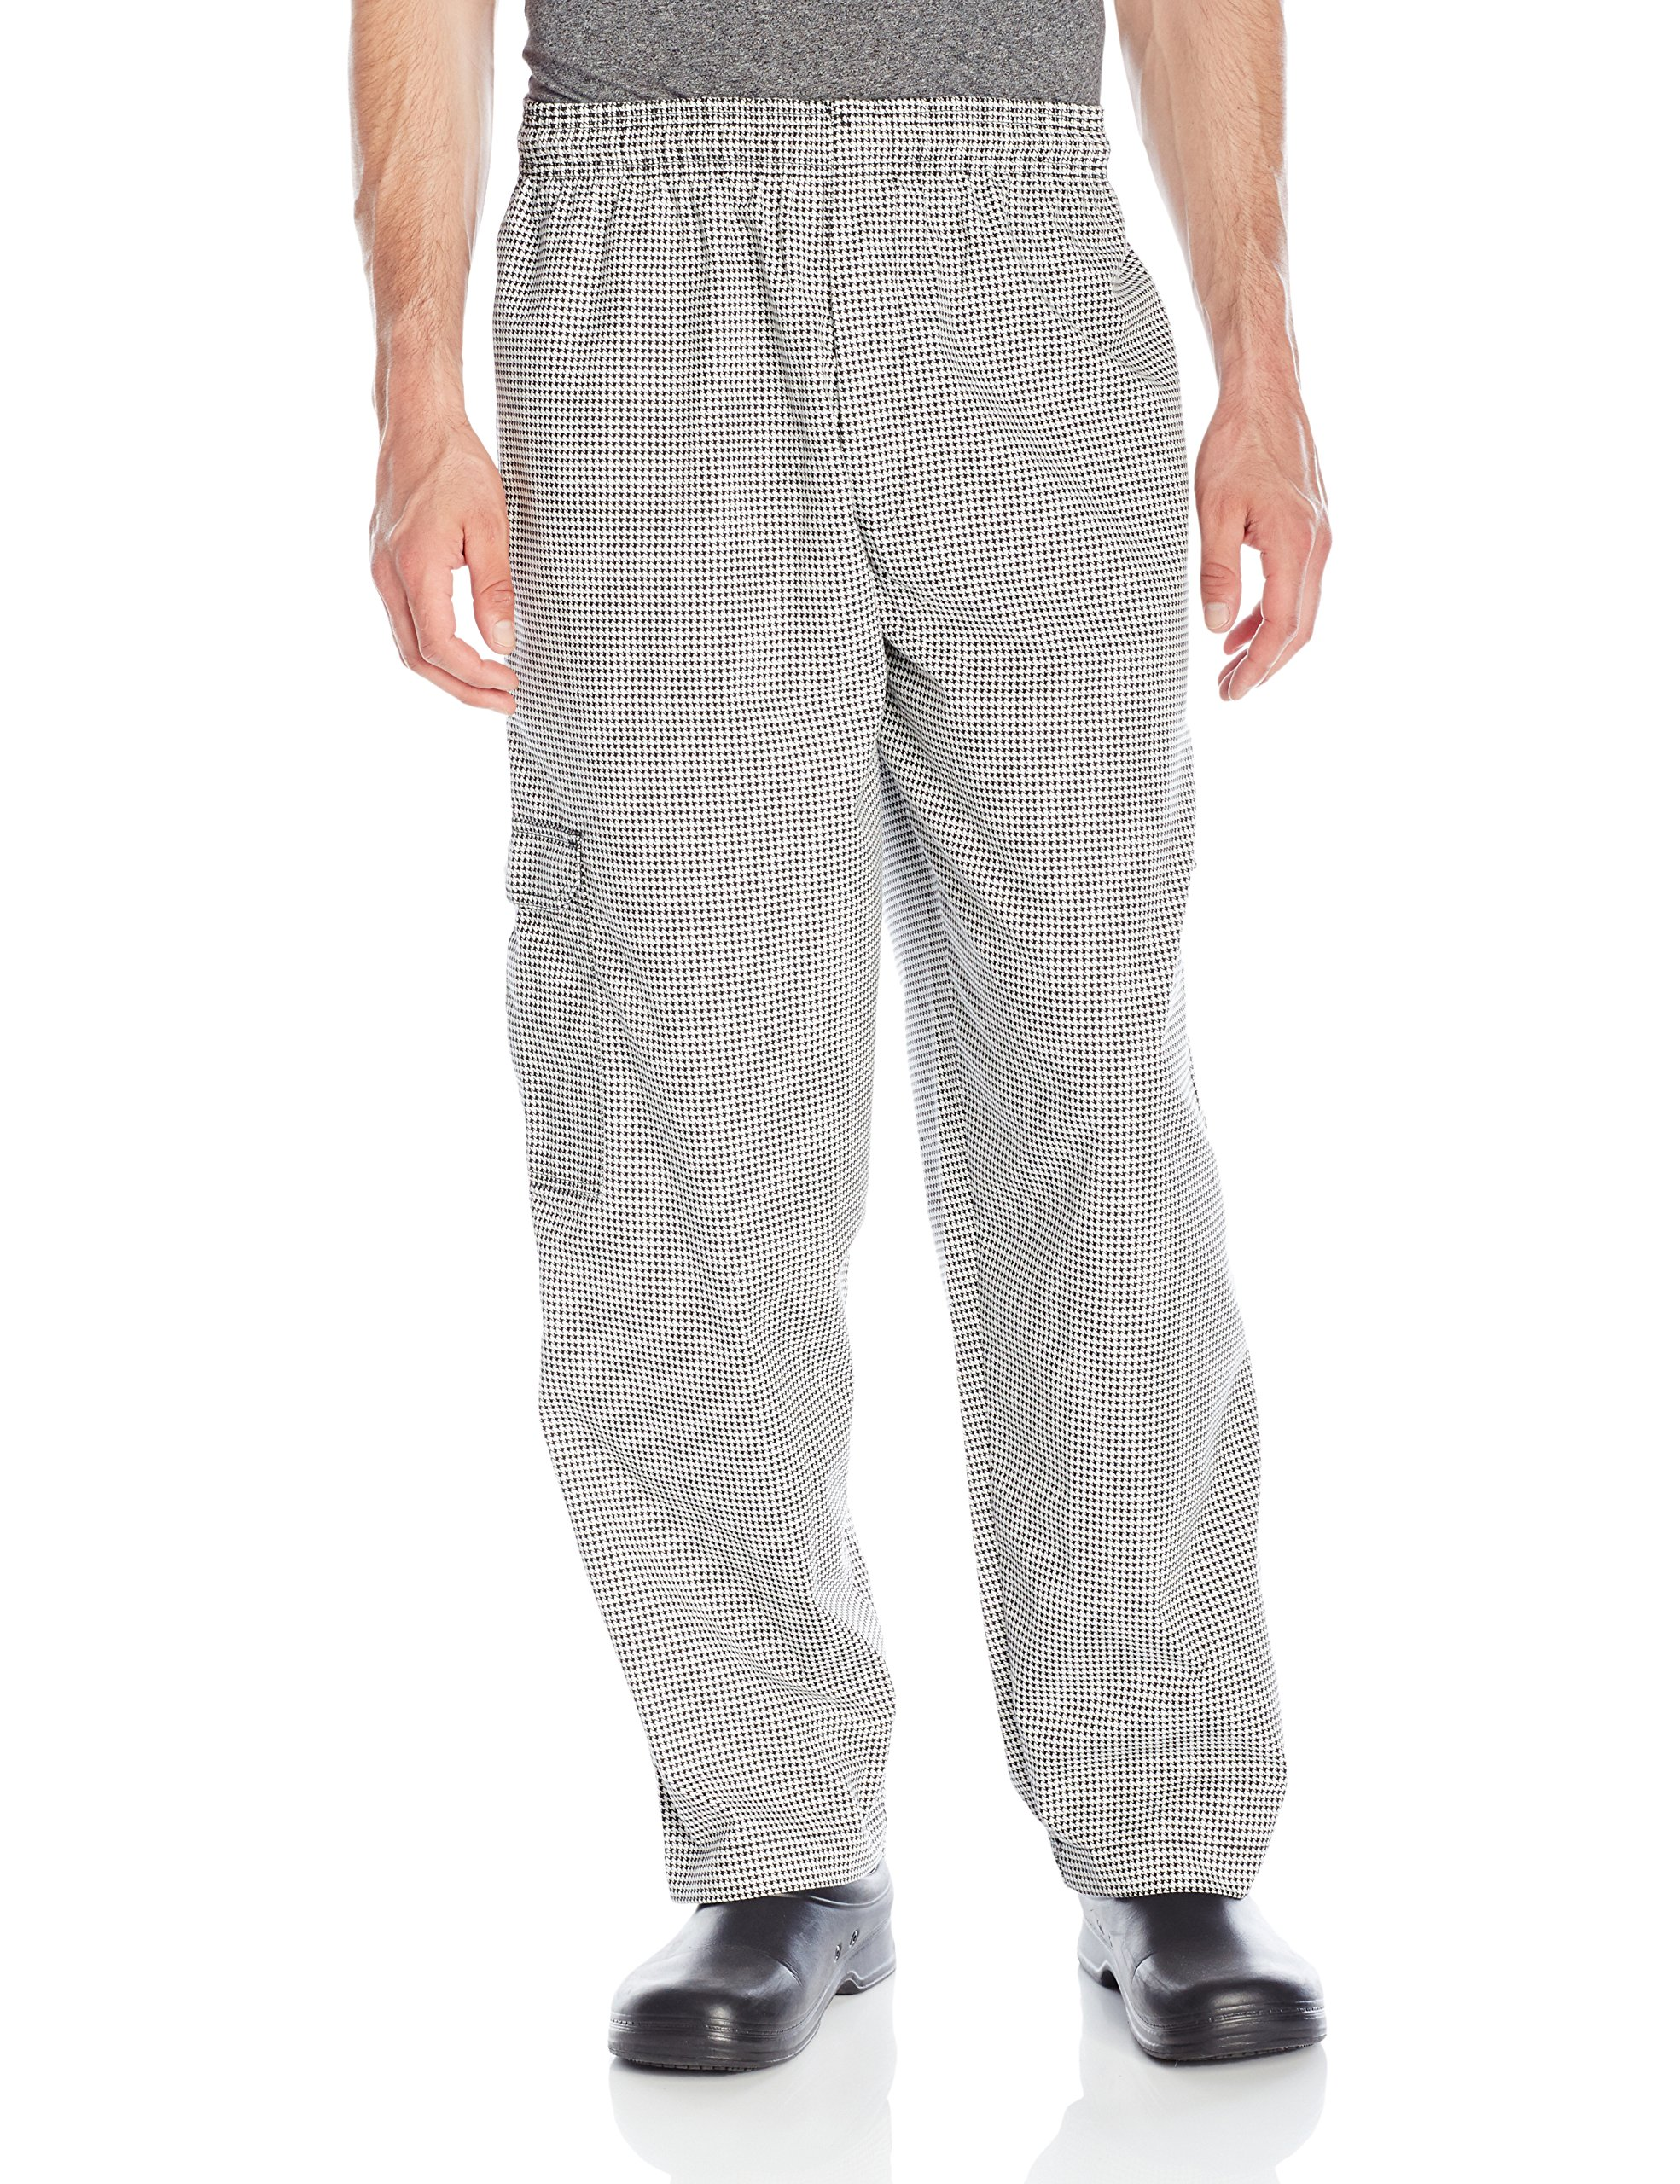 Chef Code Men's Black and White Check Cargo Pant, Check Black/White, 2X-Large